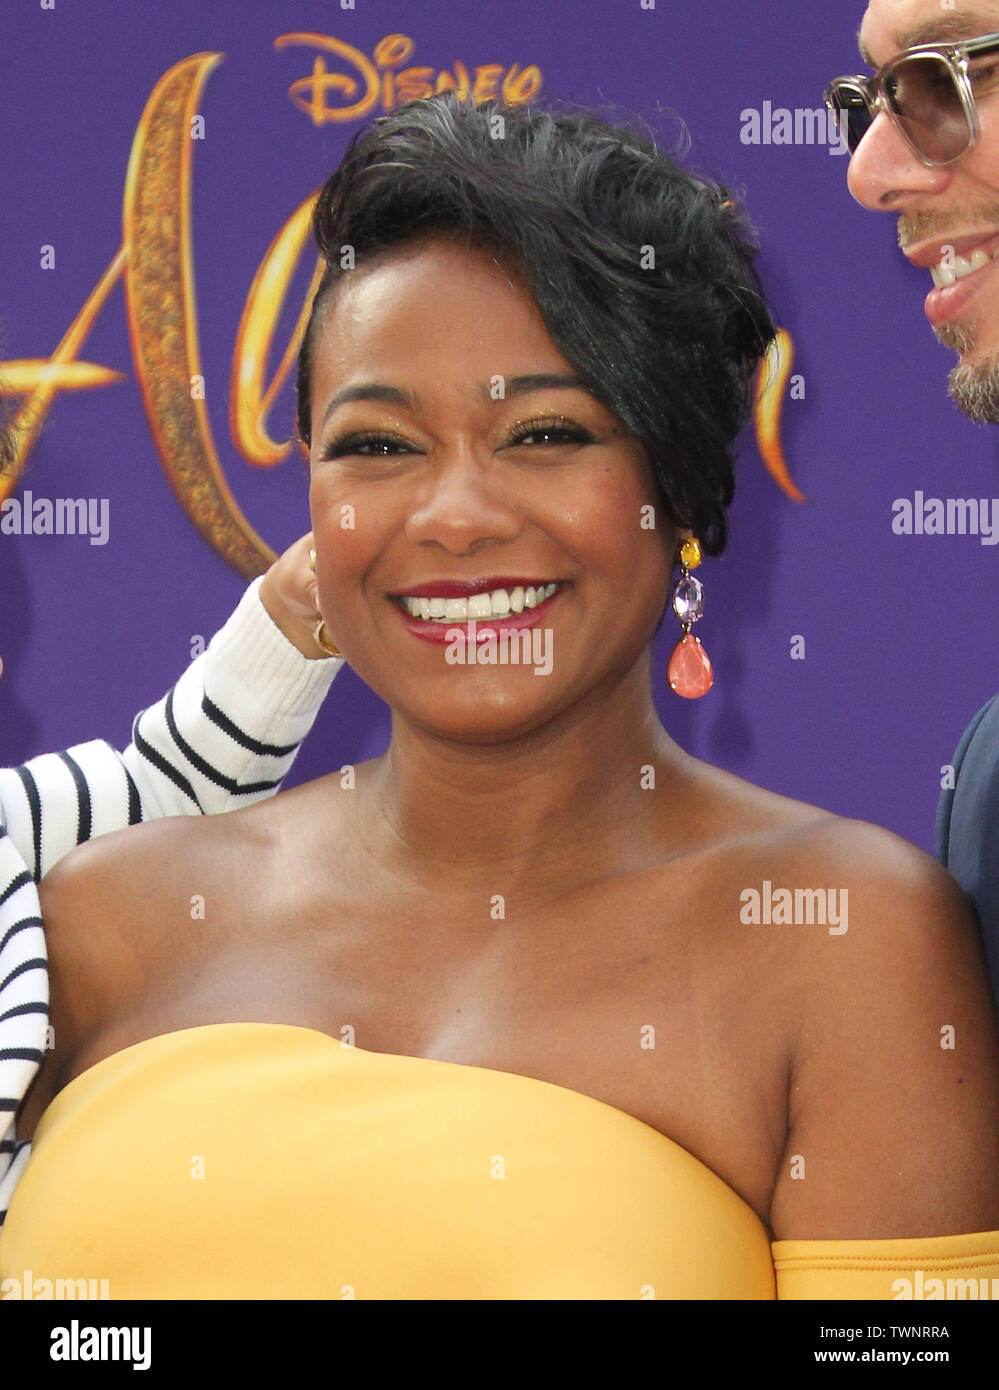 """Disney's Live- Action """"Aladdin"""" Premiere held at the El Capitan Theatre in Hollywood, California. Featuring: Tatyana Ali Where: Los Angeles, California, United States When: 21 May 2019 Credit: Adriana M. Barraza/WENN.com - Stock Image"""